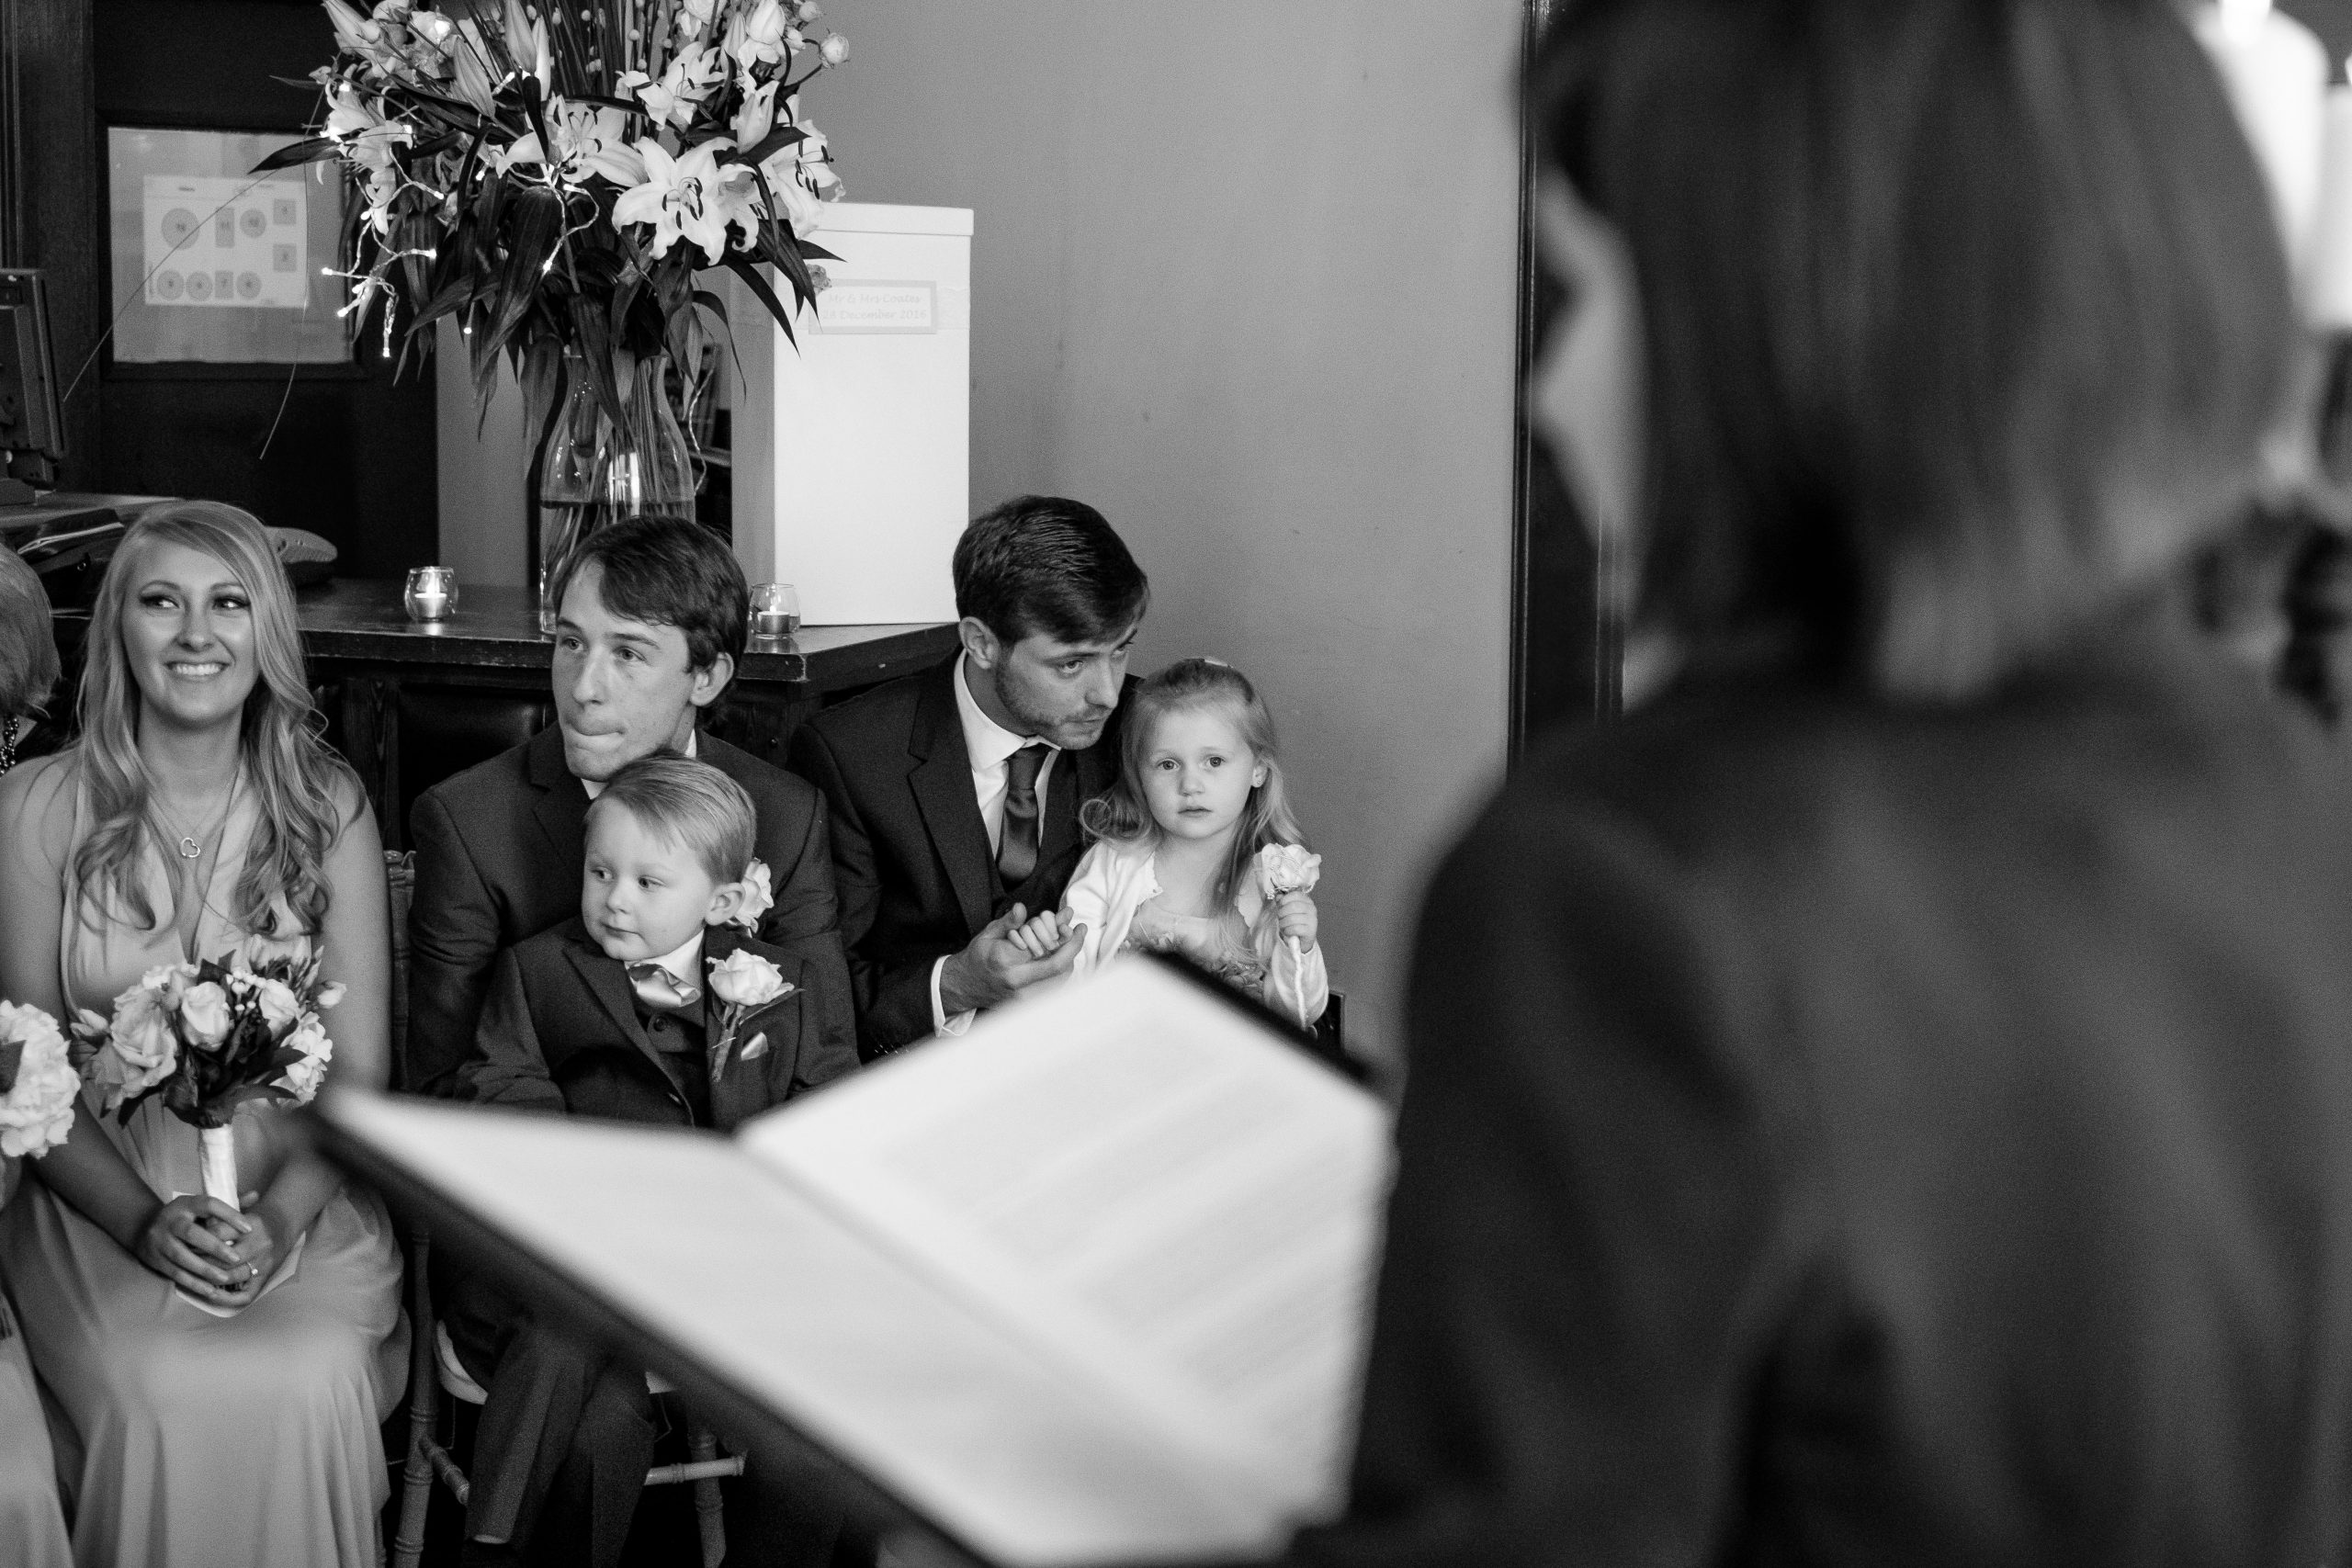 Celebrant conducting a wedding ceremony with bridesmaids looking on